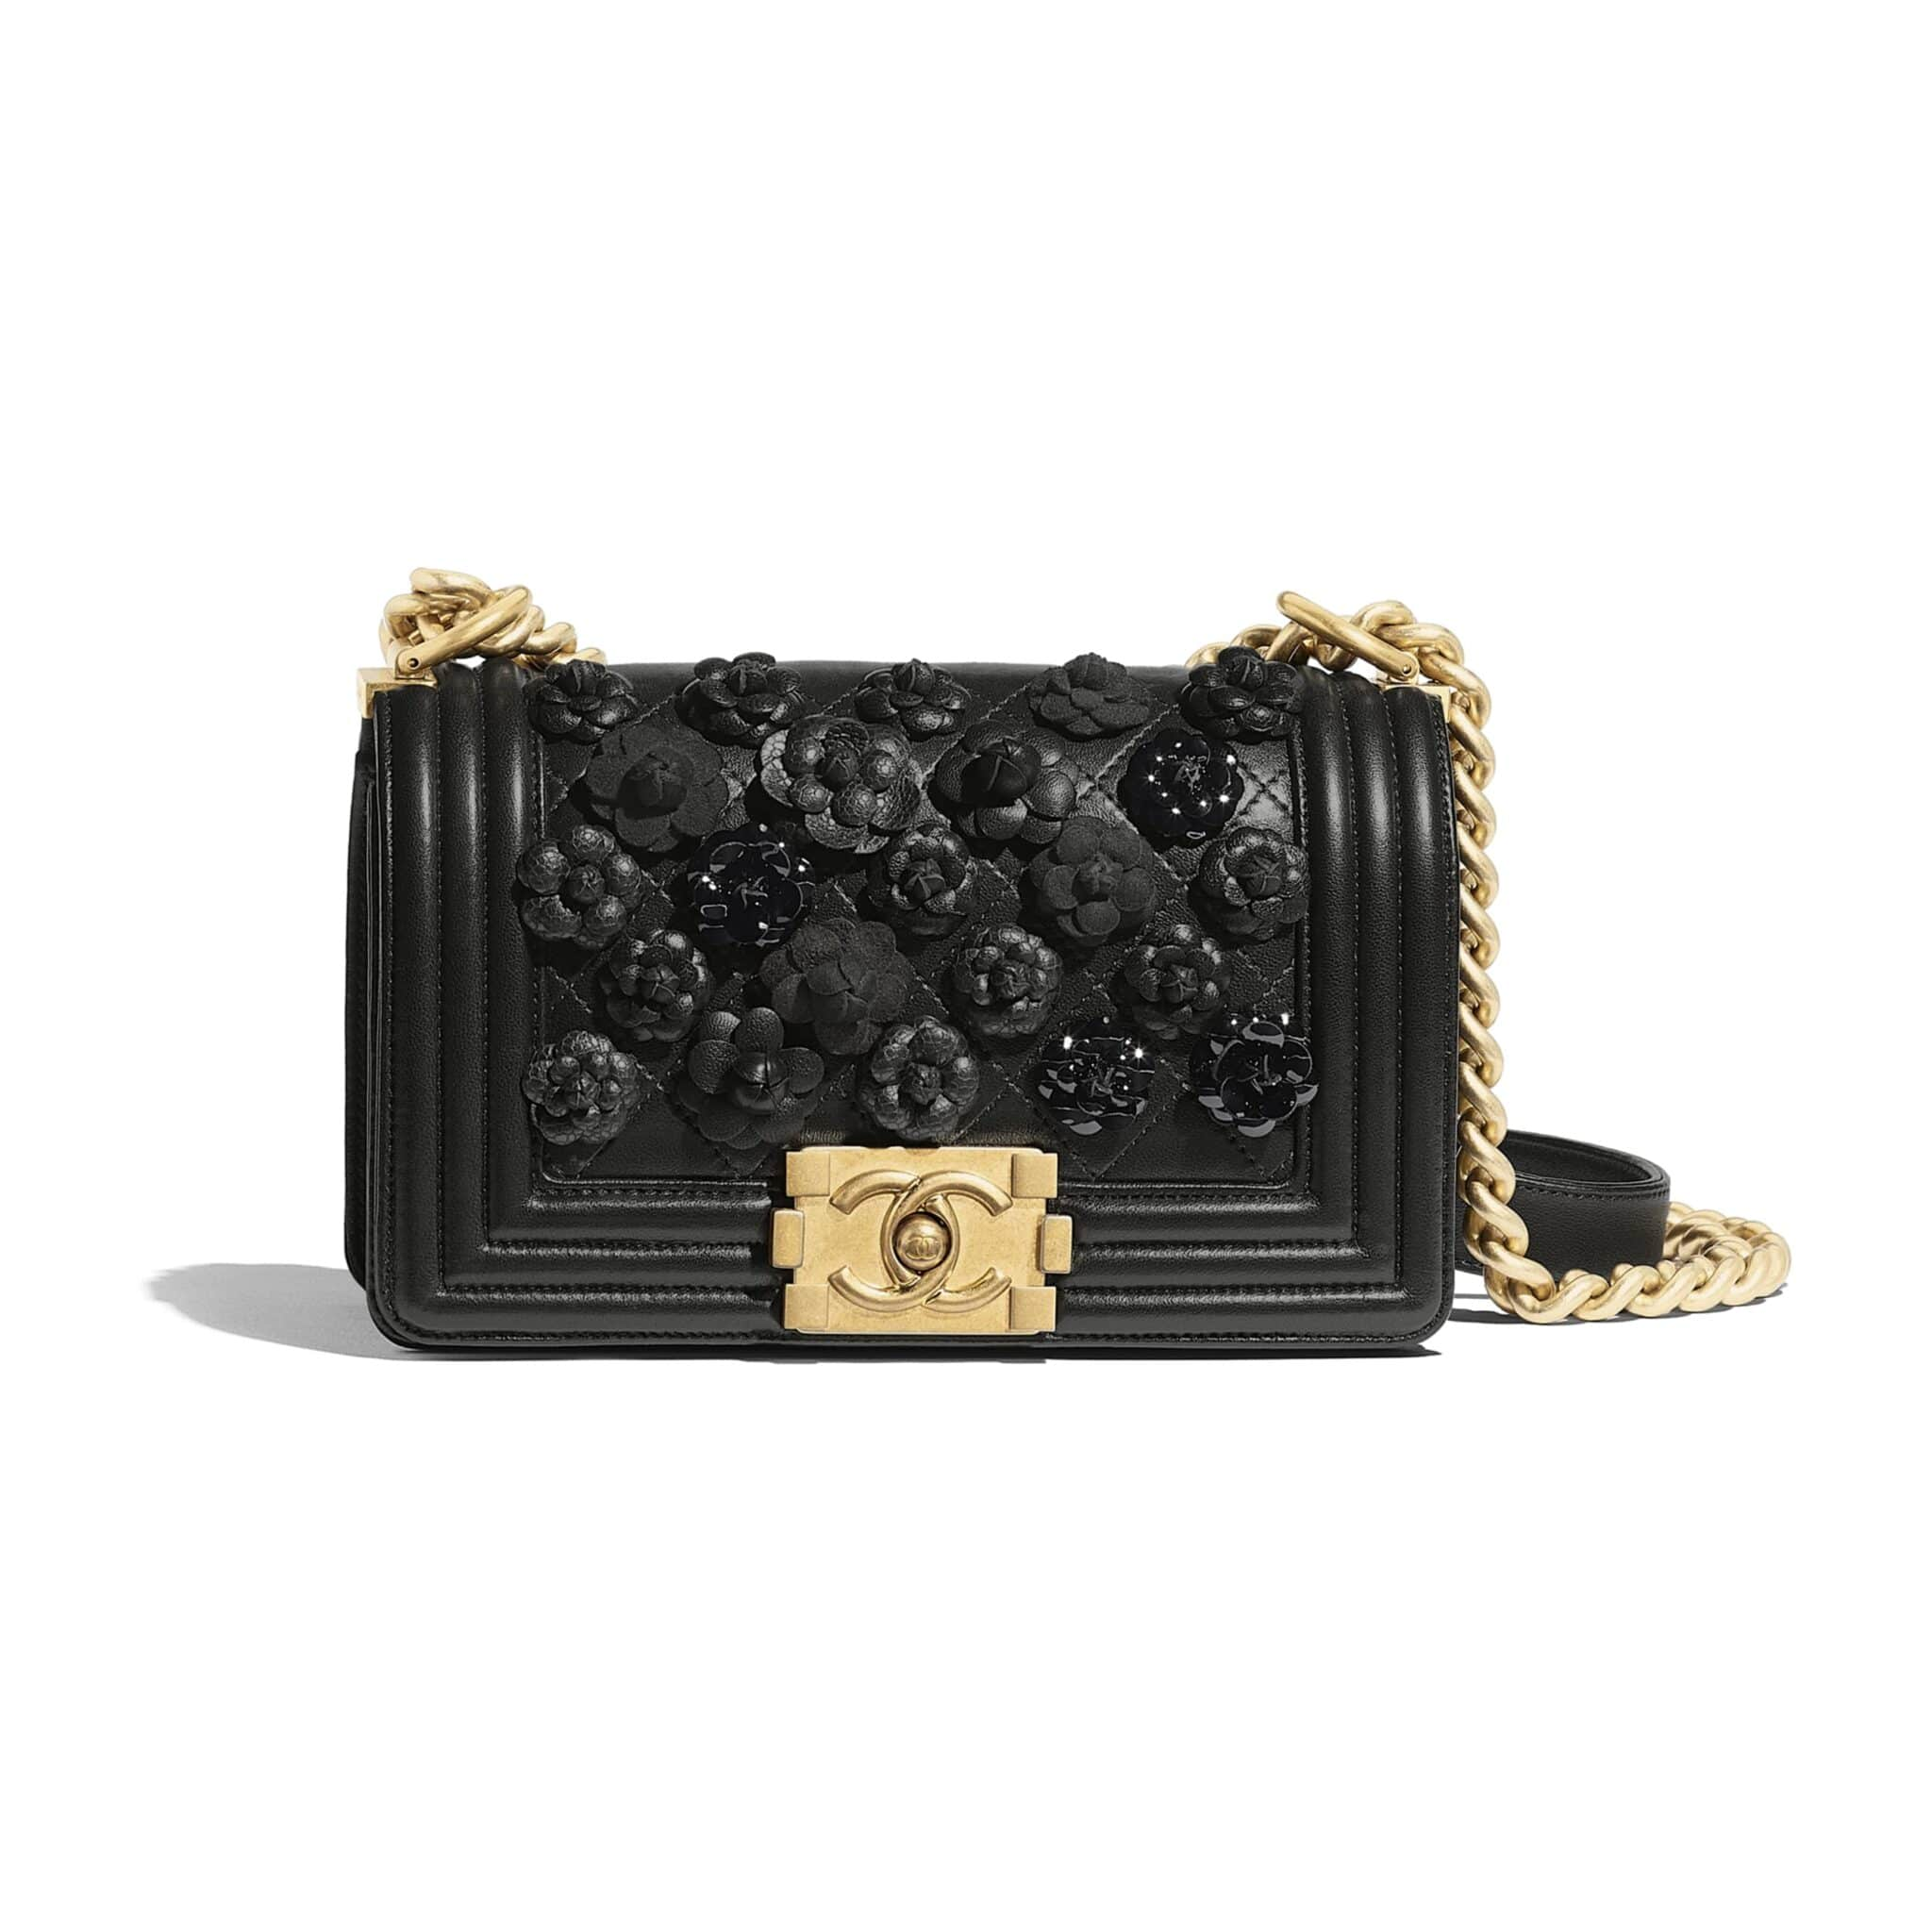 eb769a19416b77 Chanel Black Camellia Embroidered Lambskin Boy Chanel Small Flap Bag